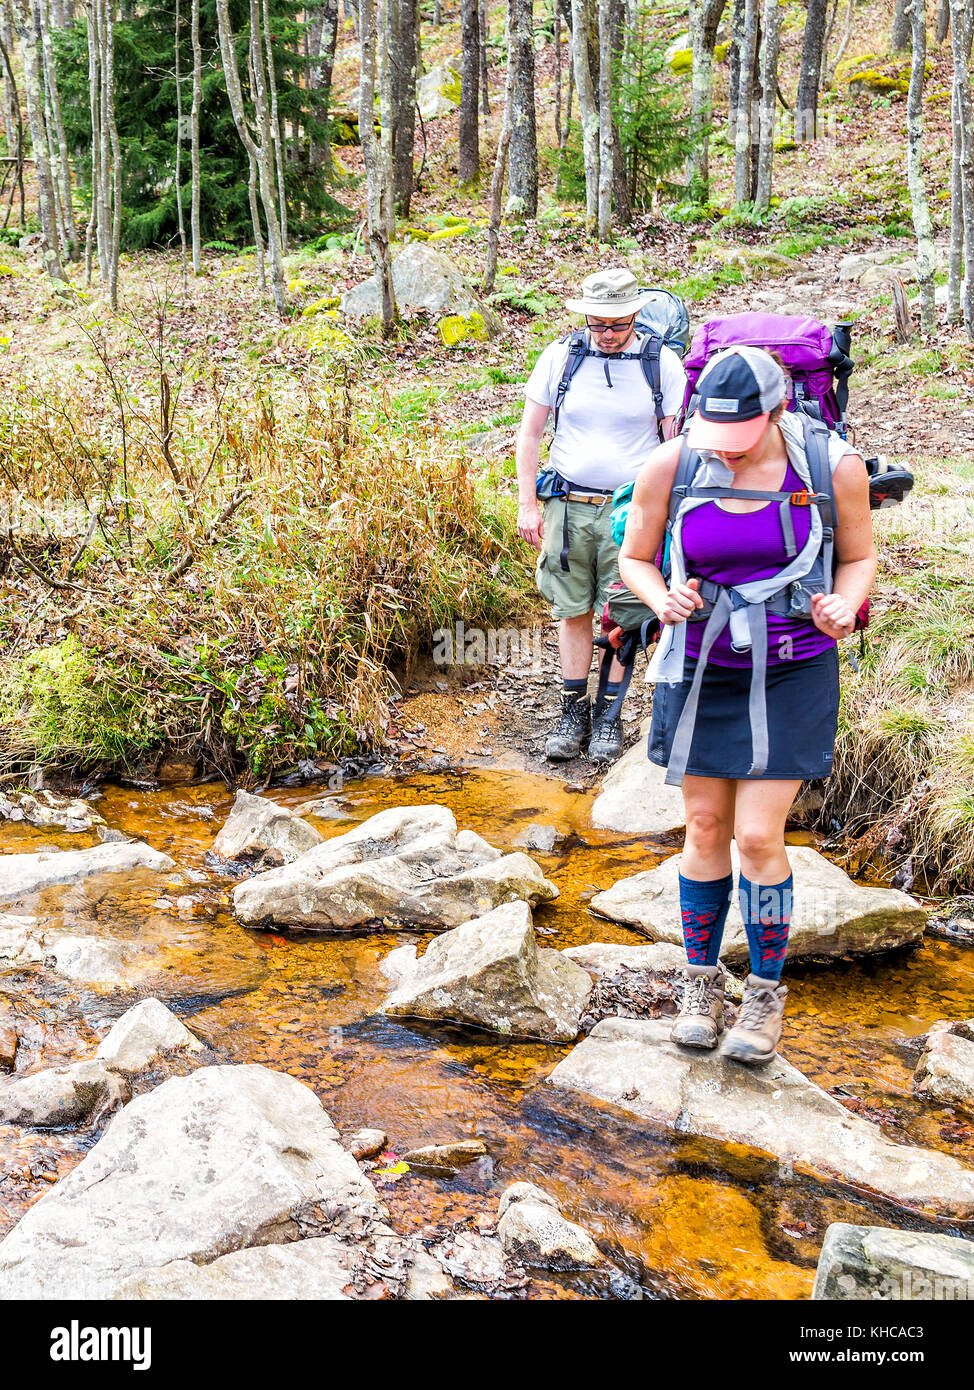 Dolly Sods, USA - October 15, 2017: Two hikers backpackers backcountry crossing small river, creek or stream during - Stock Image